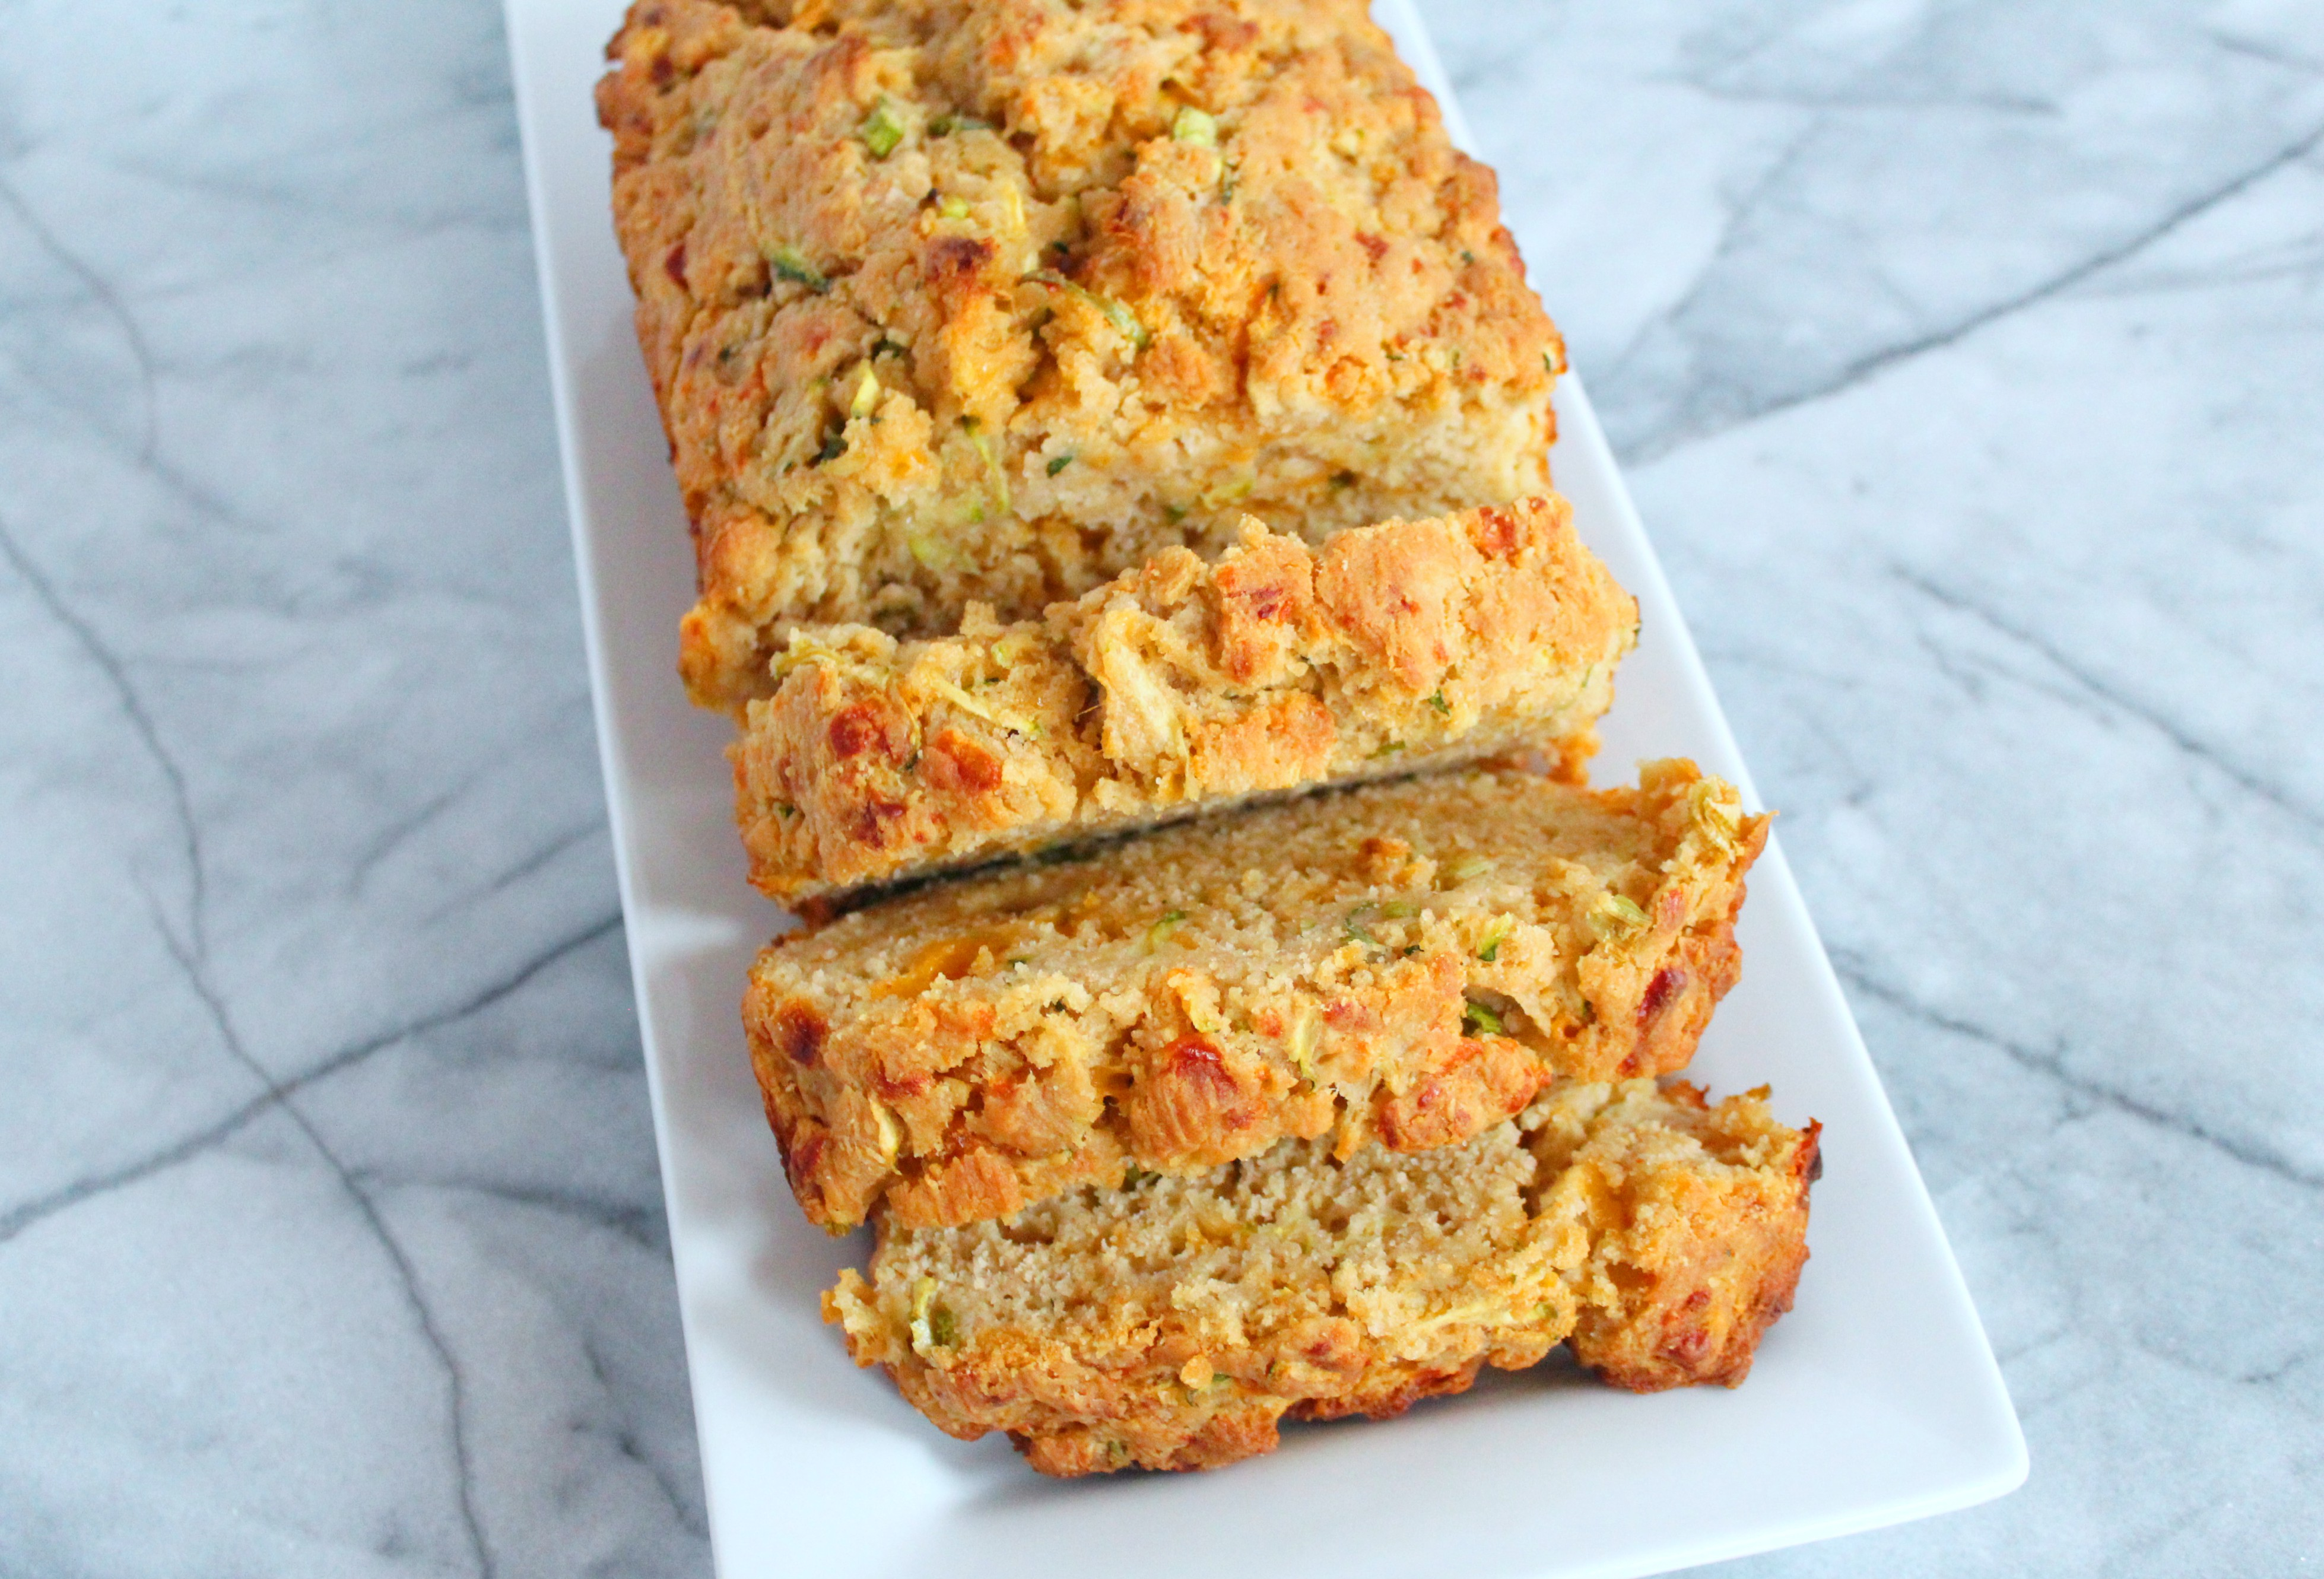 Creative What Do You Get When You Combine Cheddar Cheese Zucchini Beer Bread Choices Cheesy Zucchini Bread Jamie Oliver Zucchini Cheesy Bread Reviews nice food Zucchini Cheesy Bread